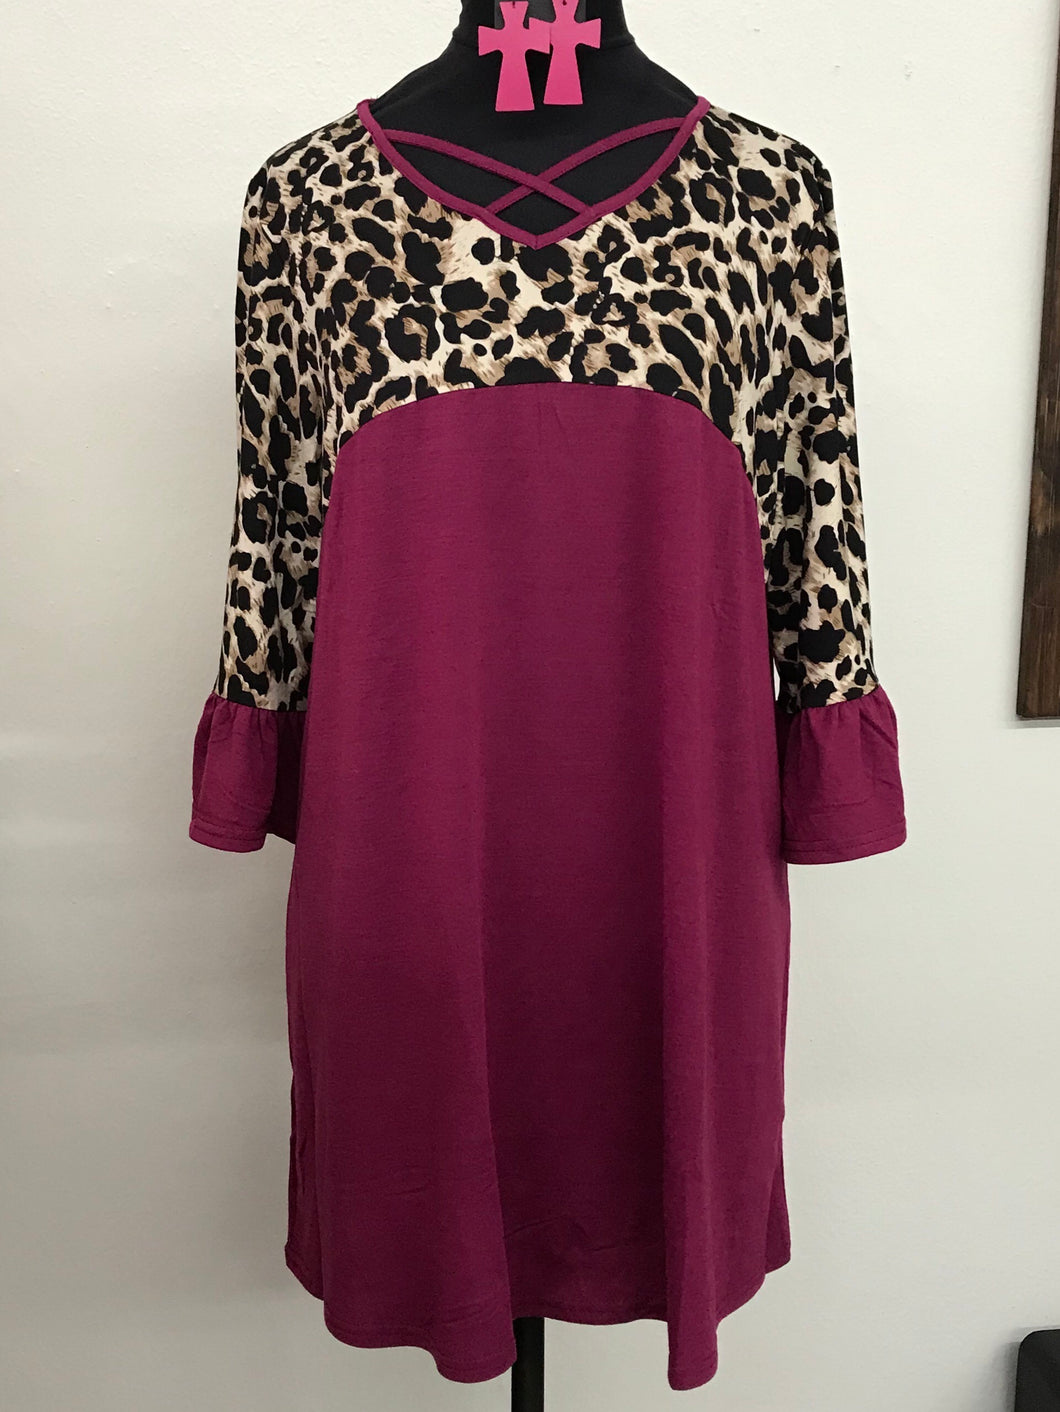 Purple and Leopard Criss Crossed Top